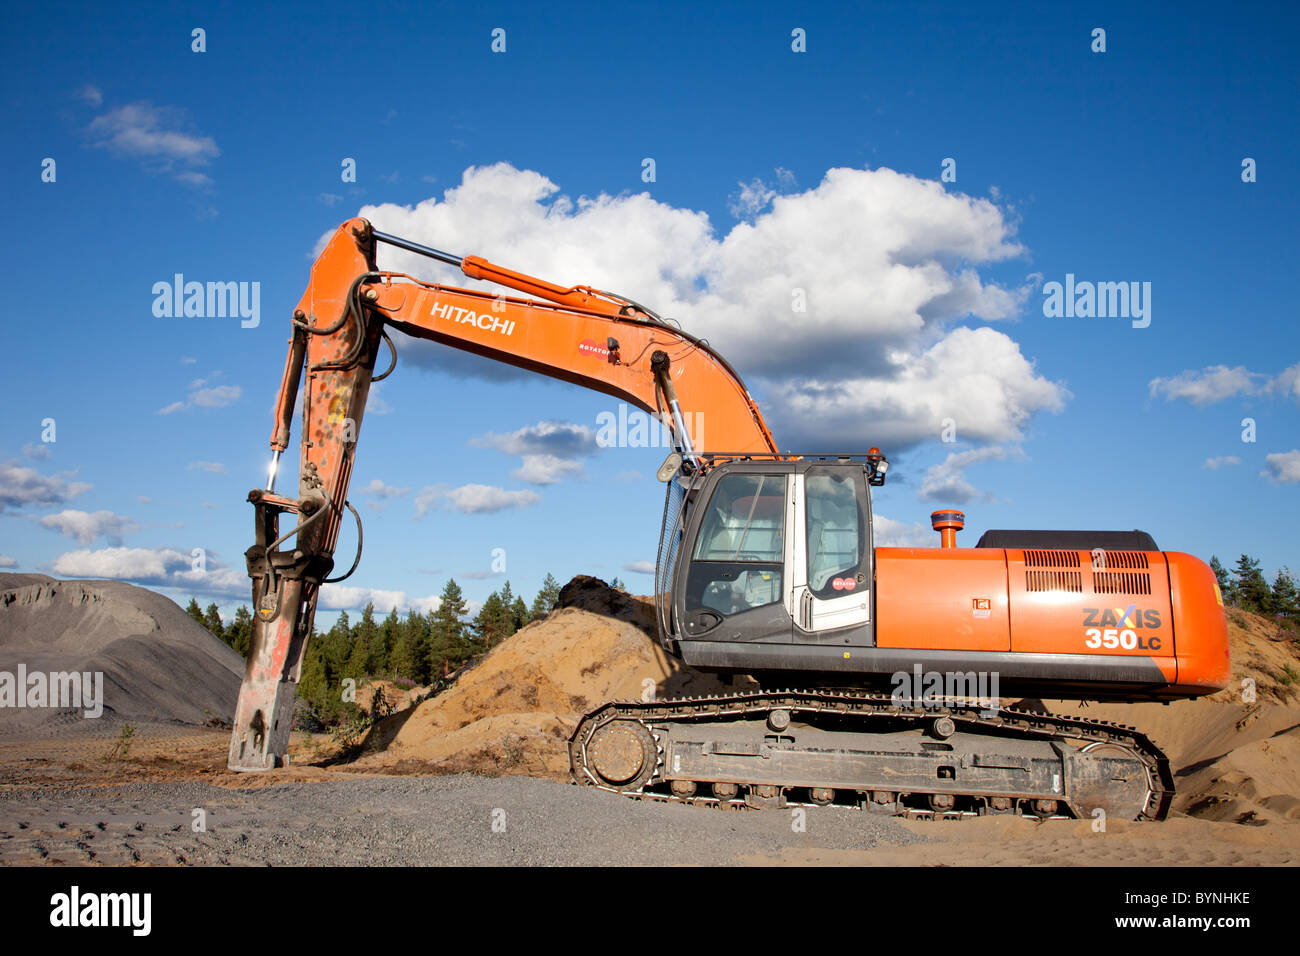 Hitachi ZAxis 350 lc excavator equipped with hydraulic rock breaker for rock quarry usage , Finland - Stock Image